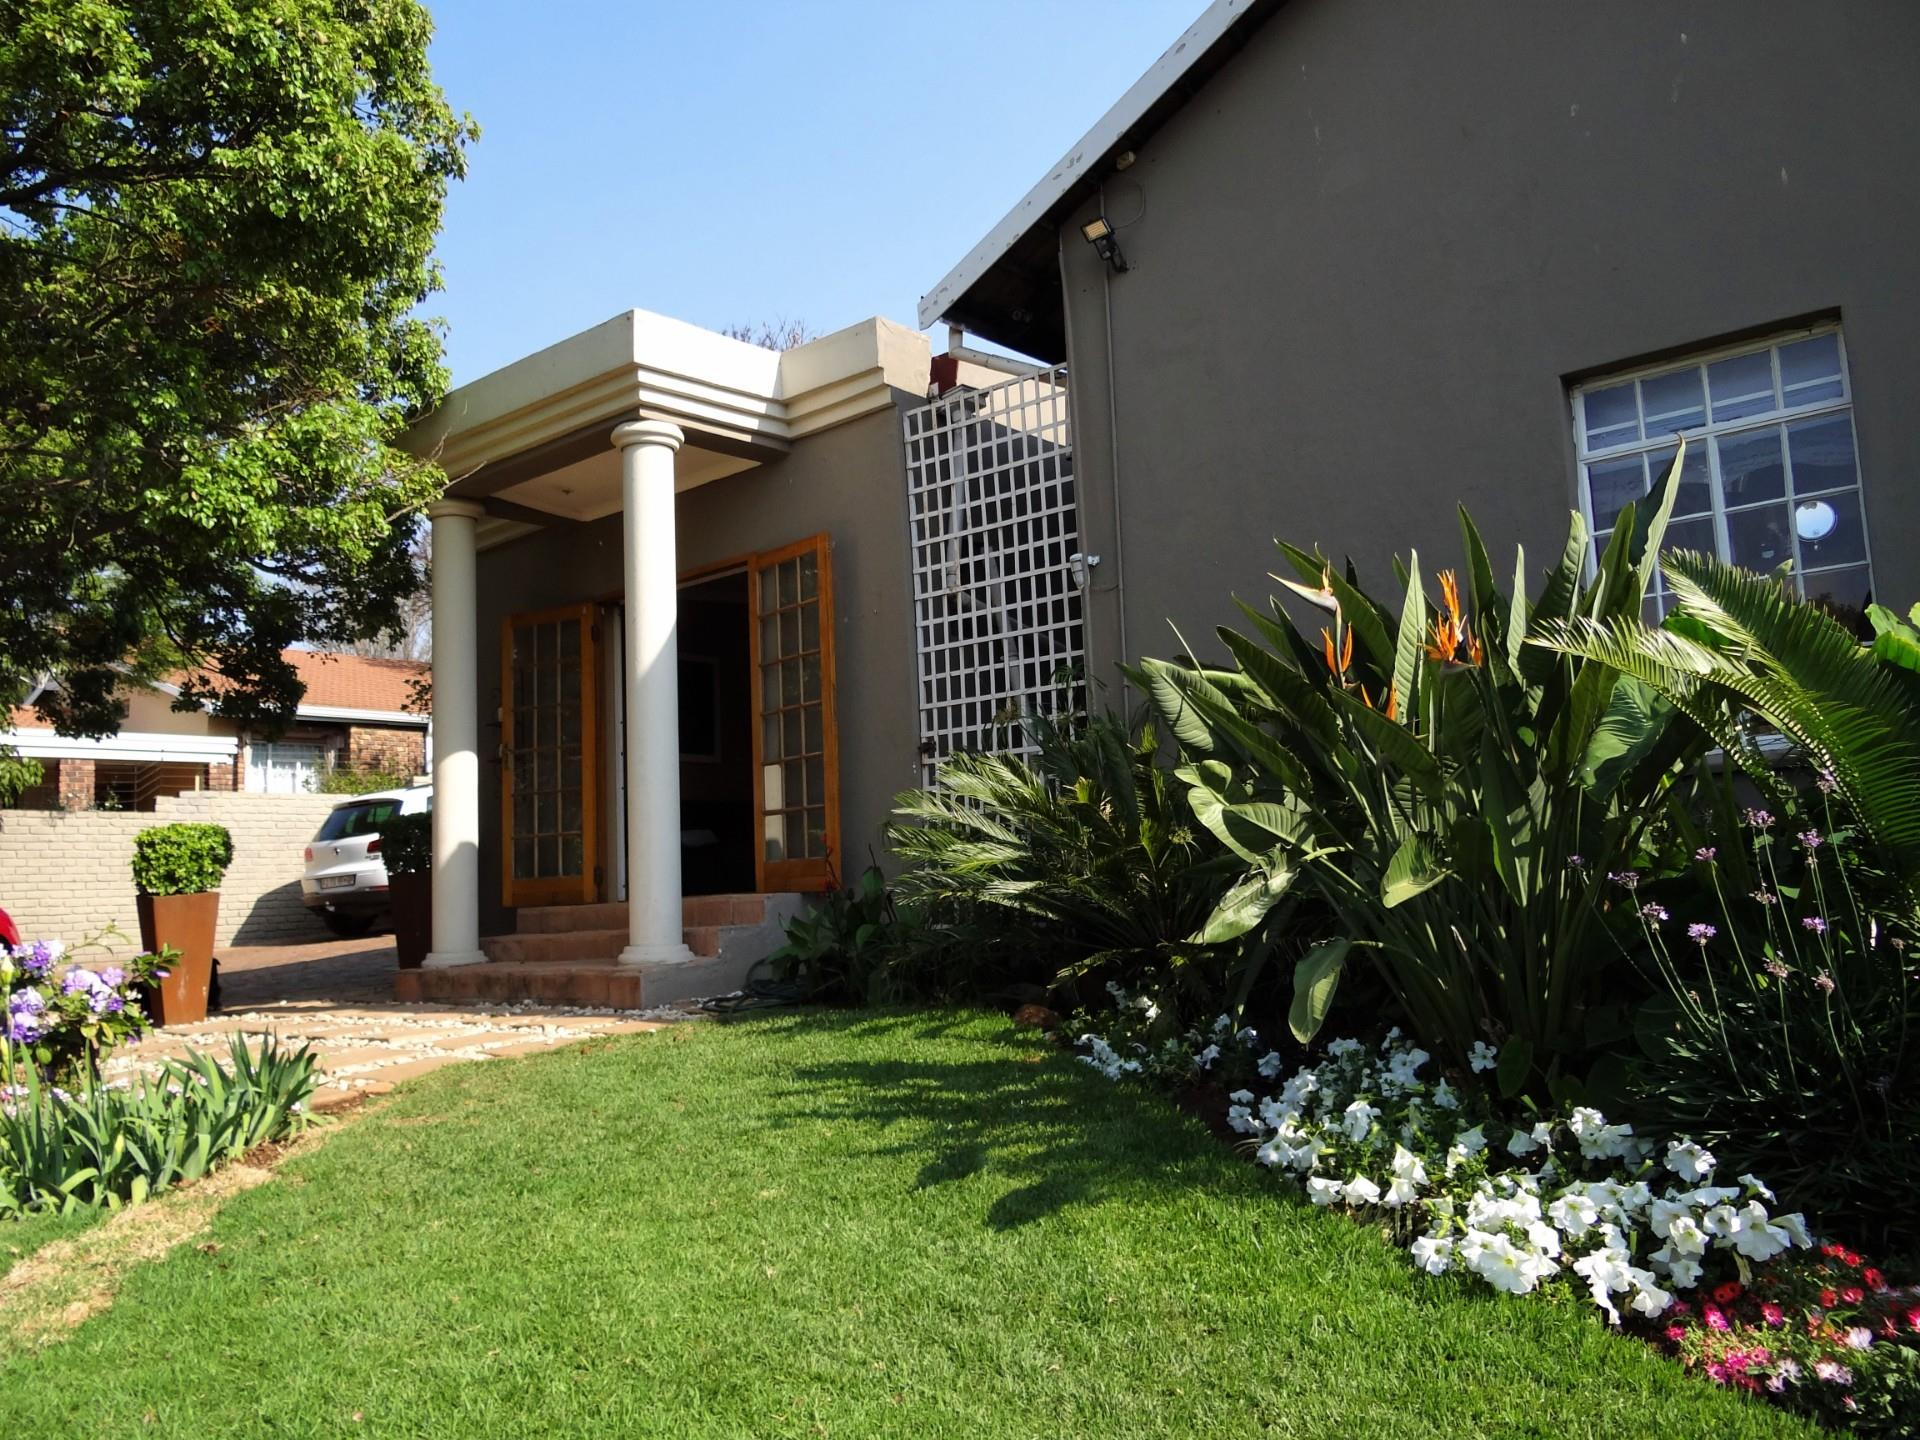 4 Bedroom House For Sale in Monument Park